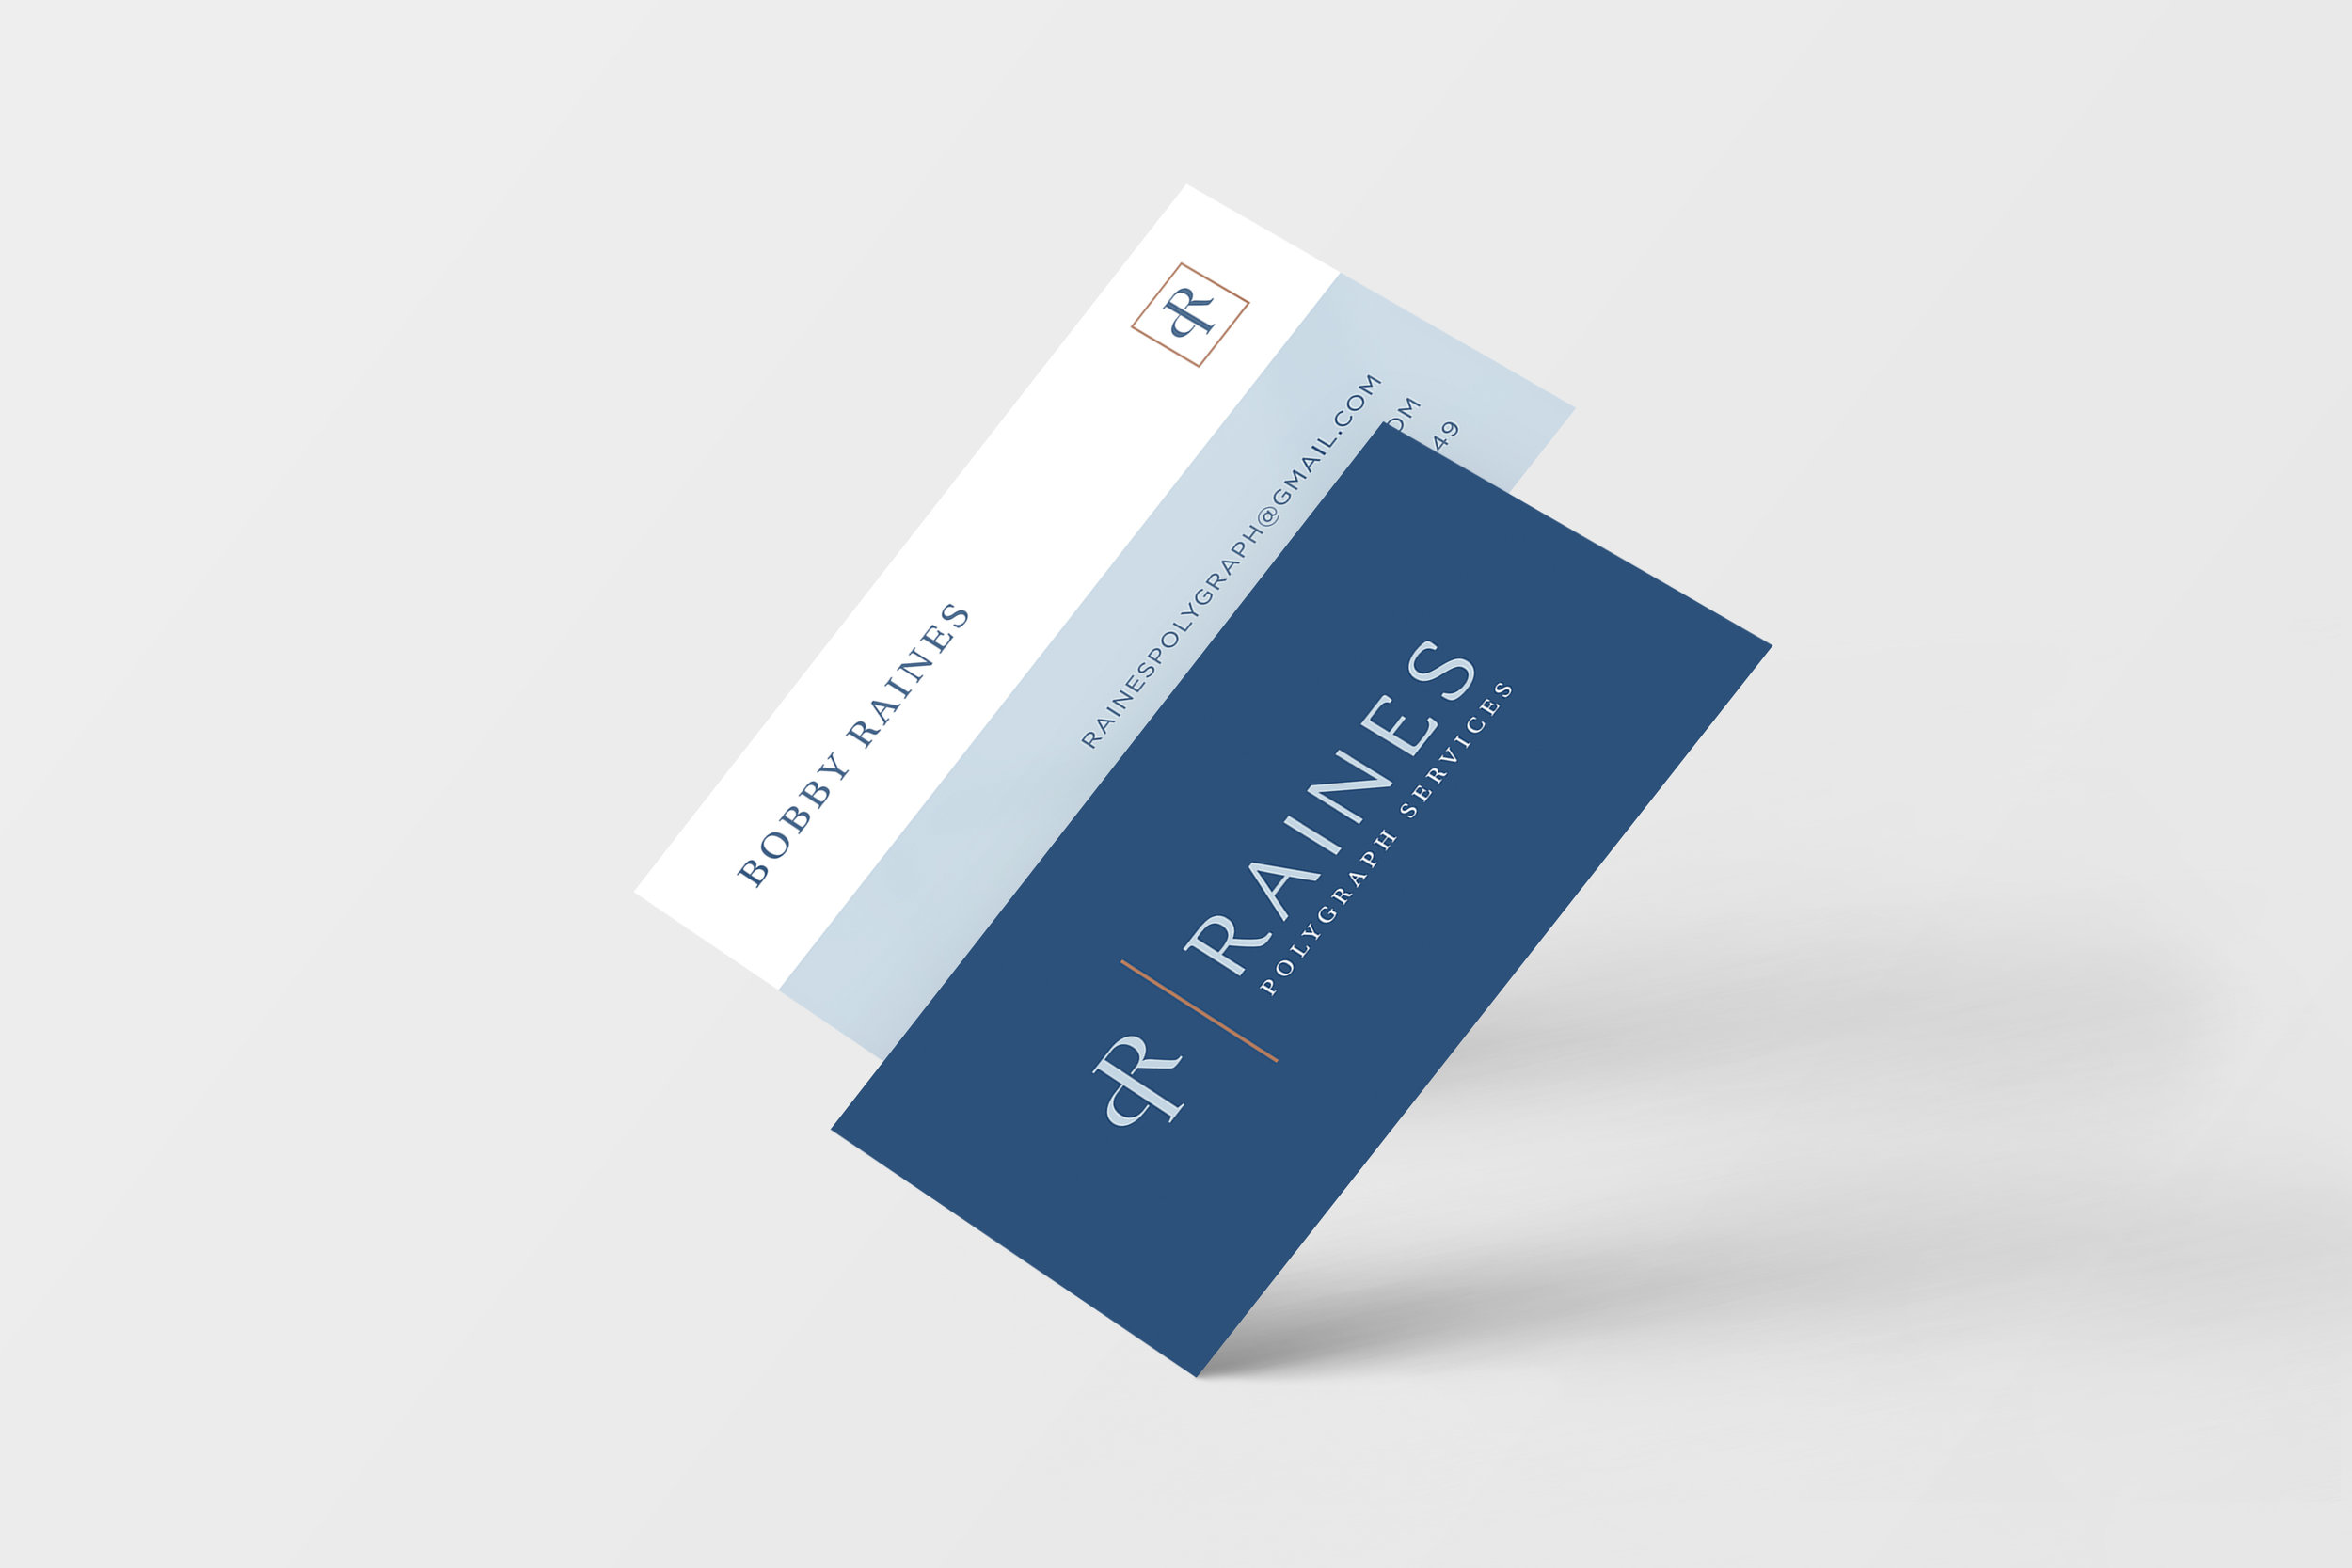 Business Card Design - Raines Polygraph Service - Hayley Bigham Designs - Tulsa brand designer - service branding - logo design - website design